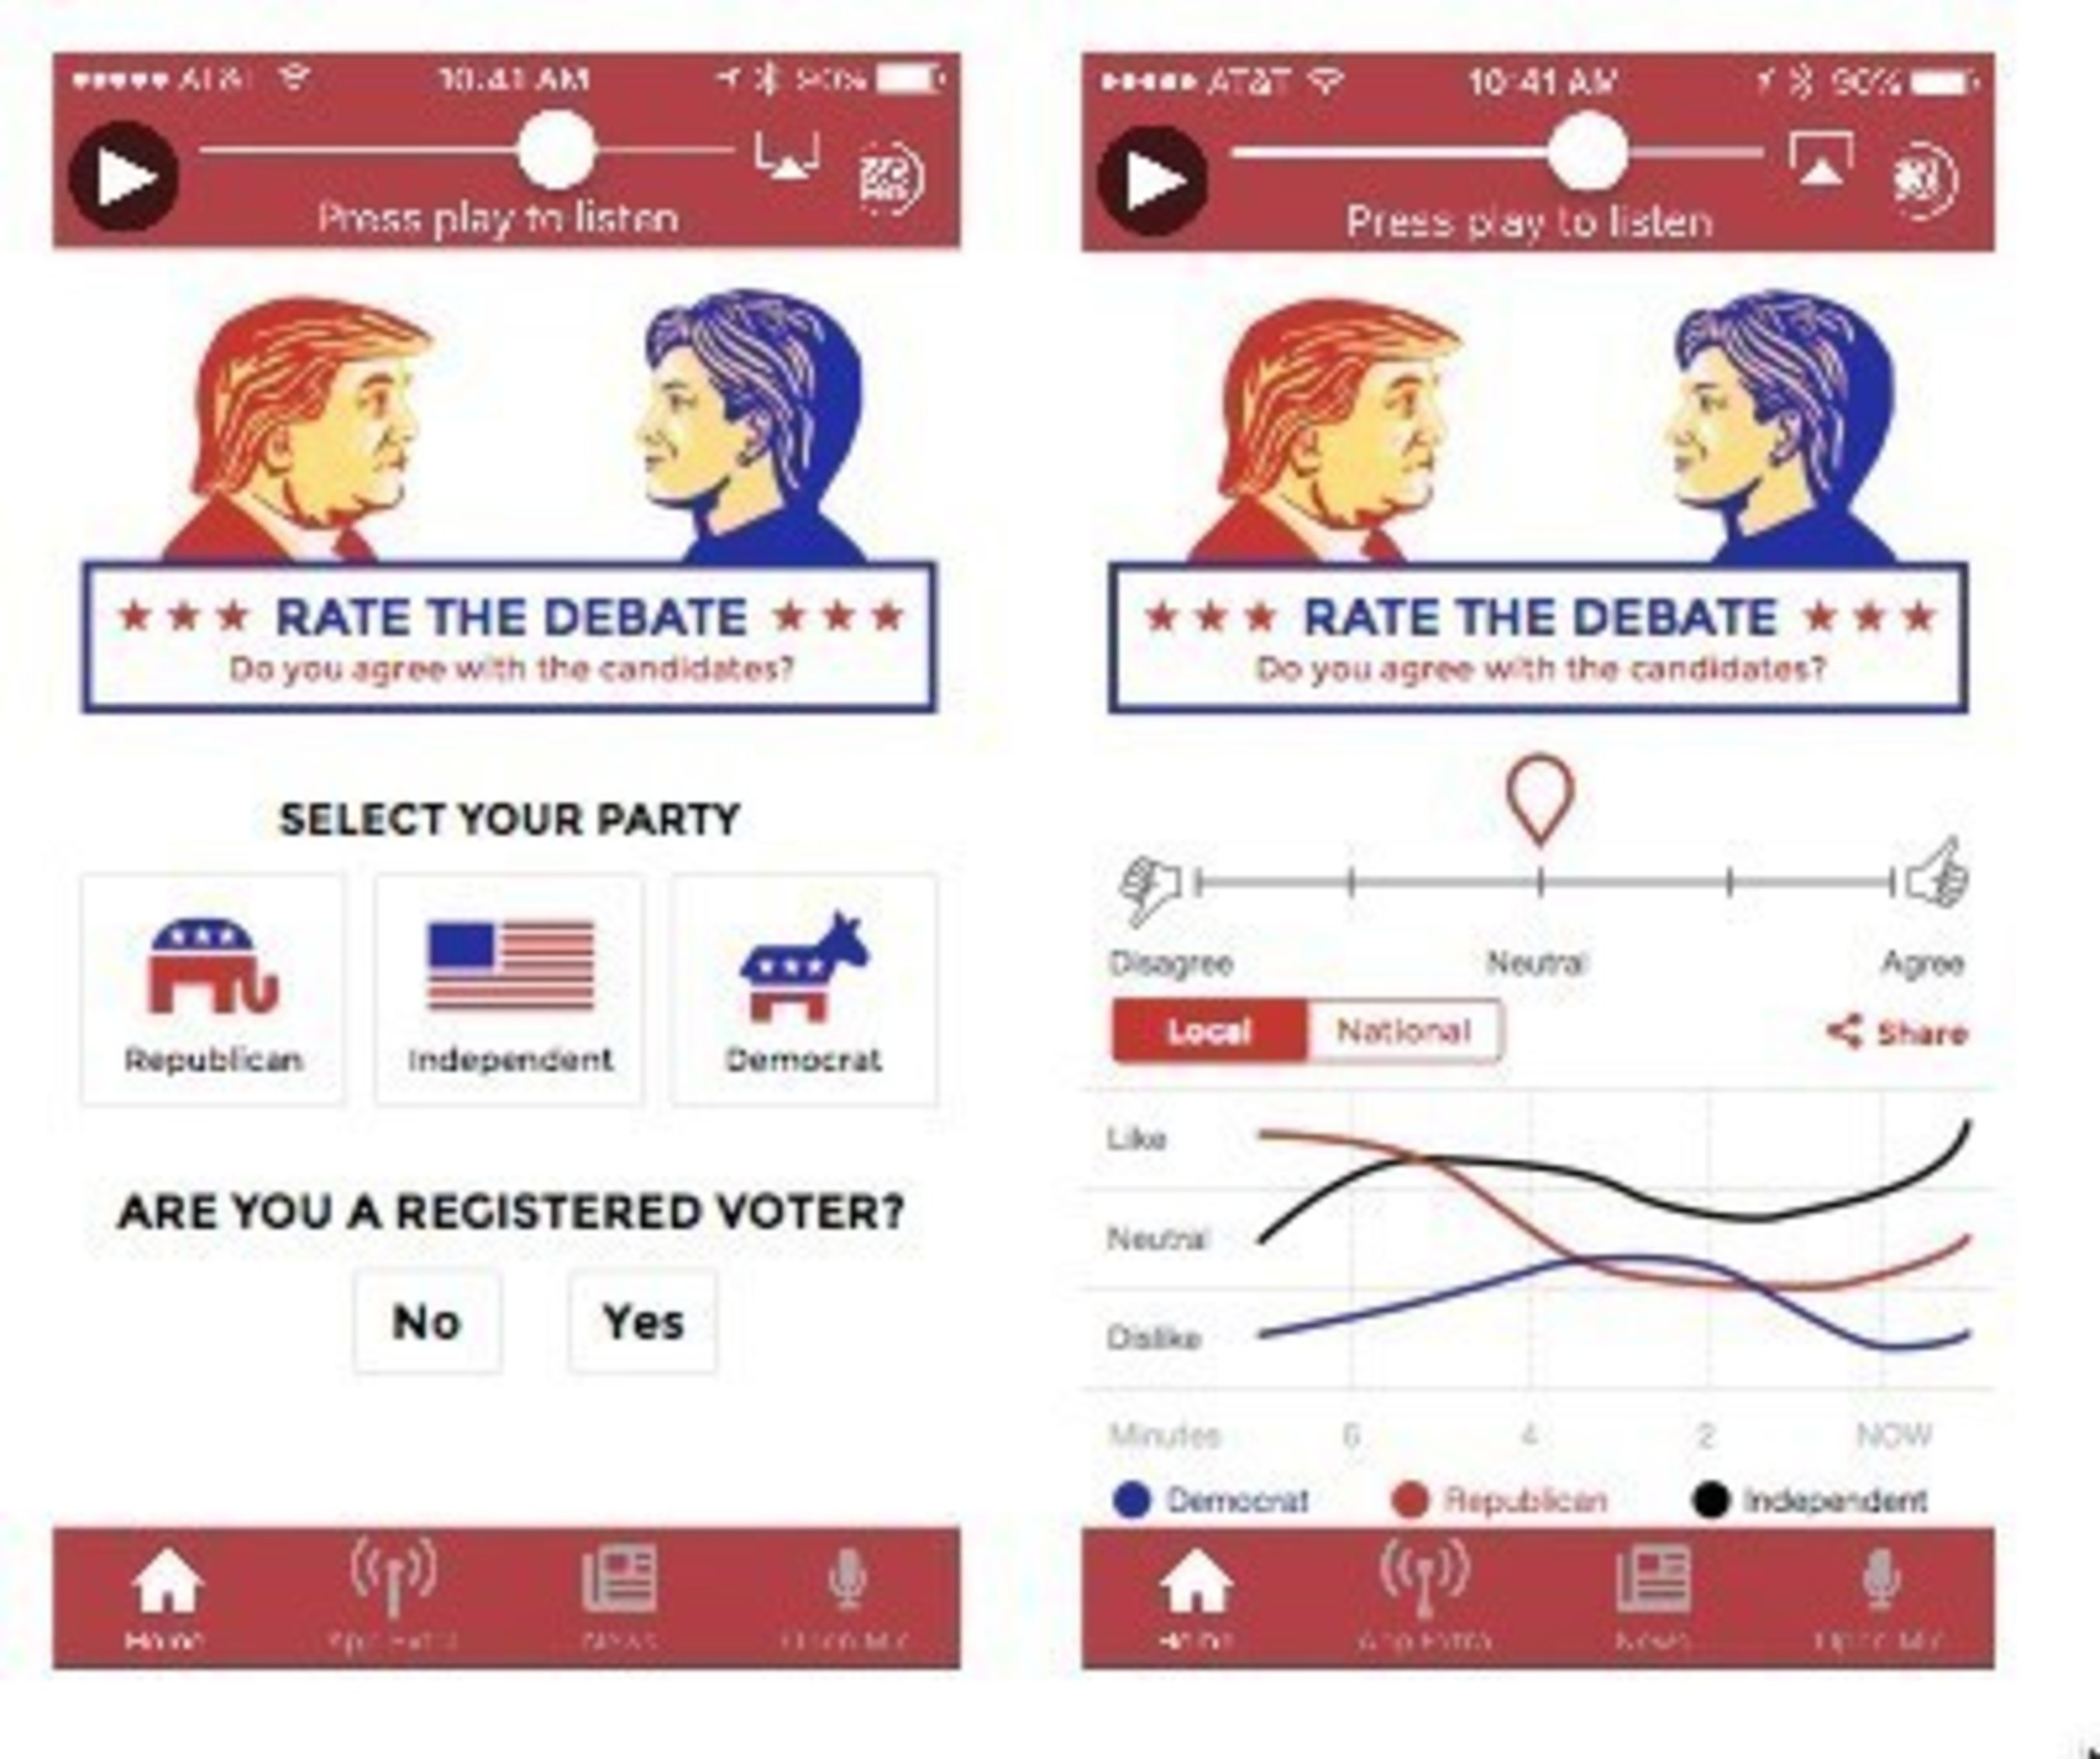 Futuri Media to Provide Live 'RATE THE DEBATE' Voting Tool for Futuri Mobile and TopicPulse Clients to Use During Presidential Debate